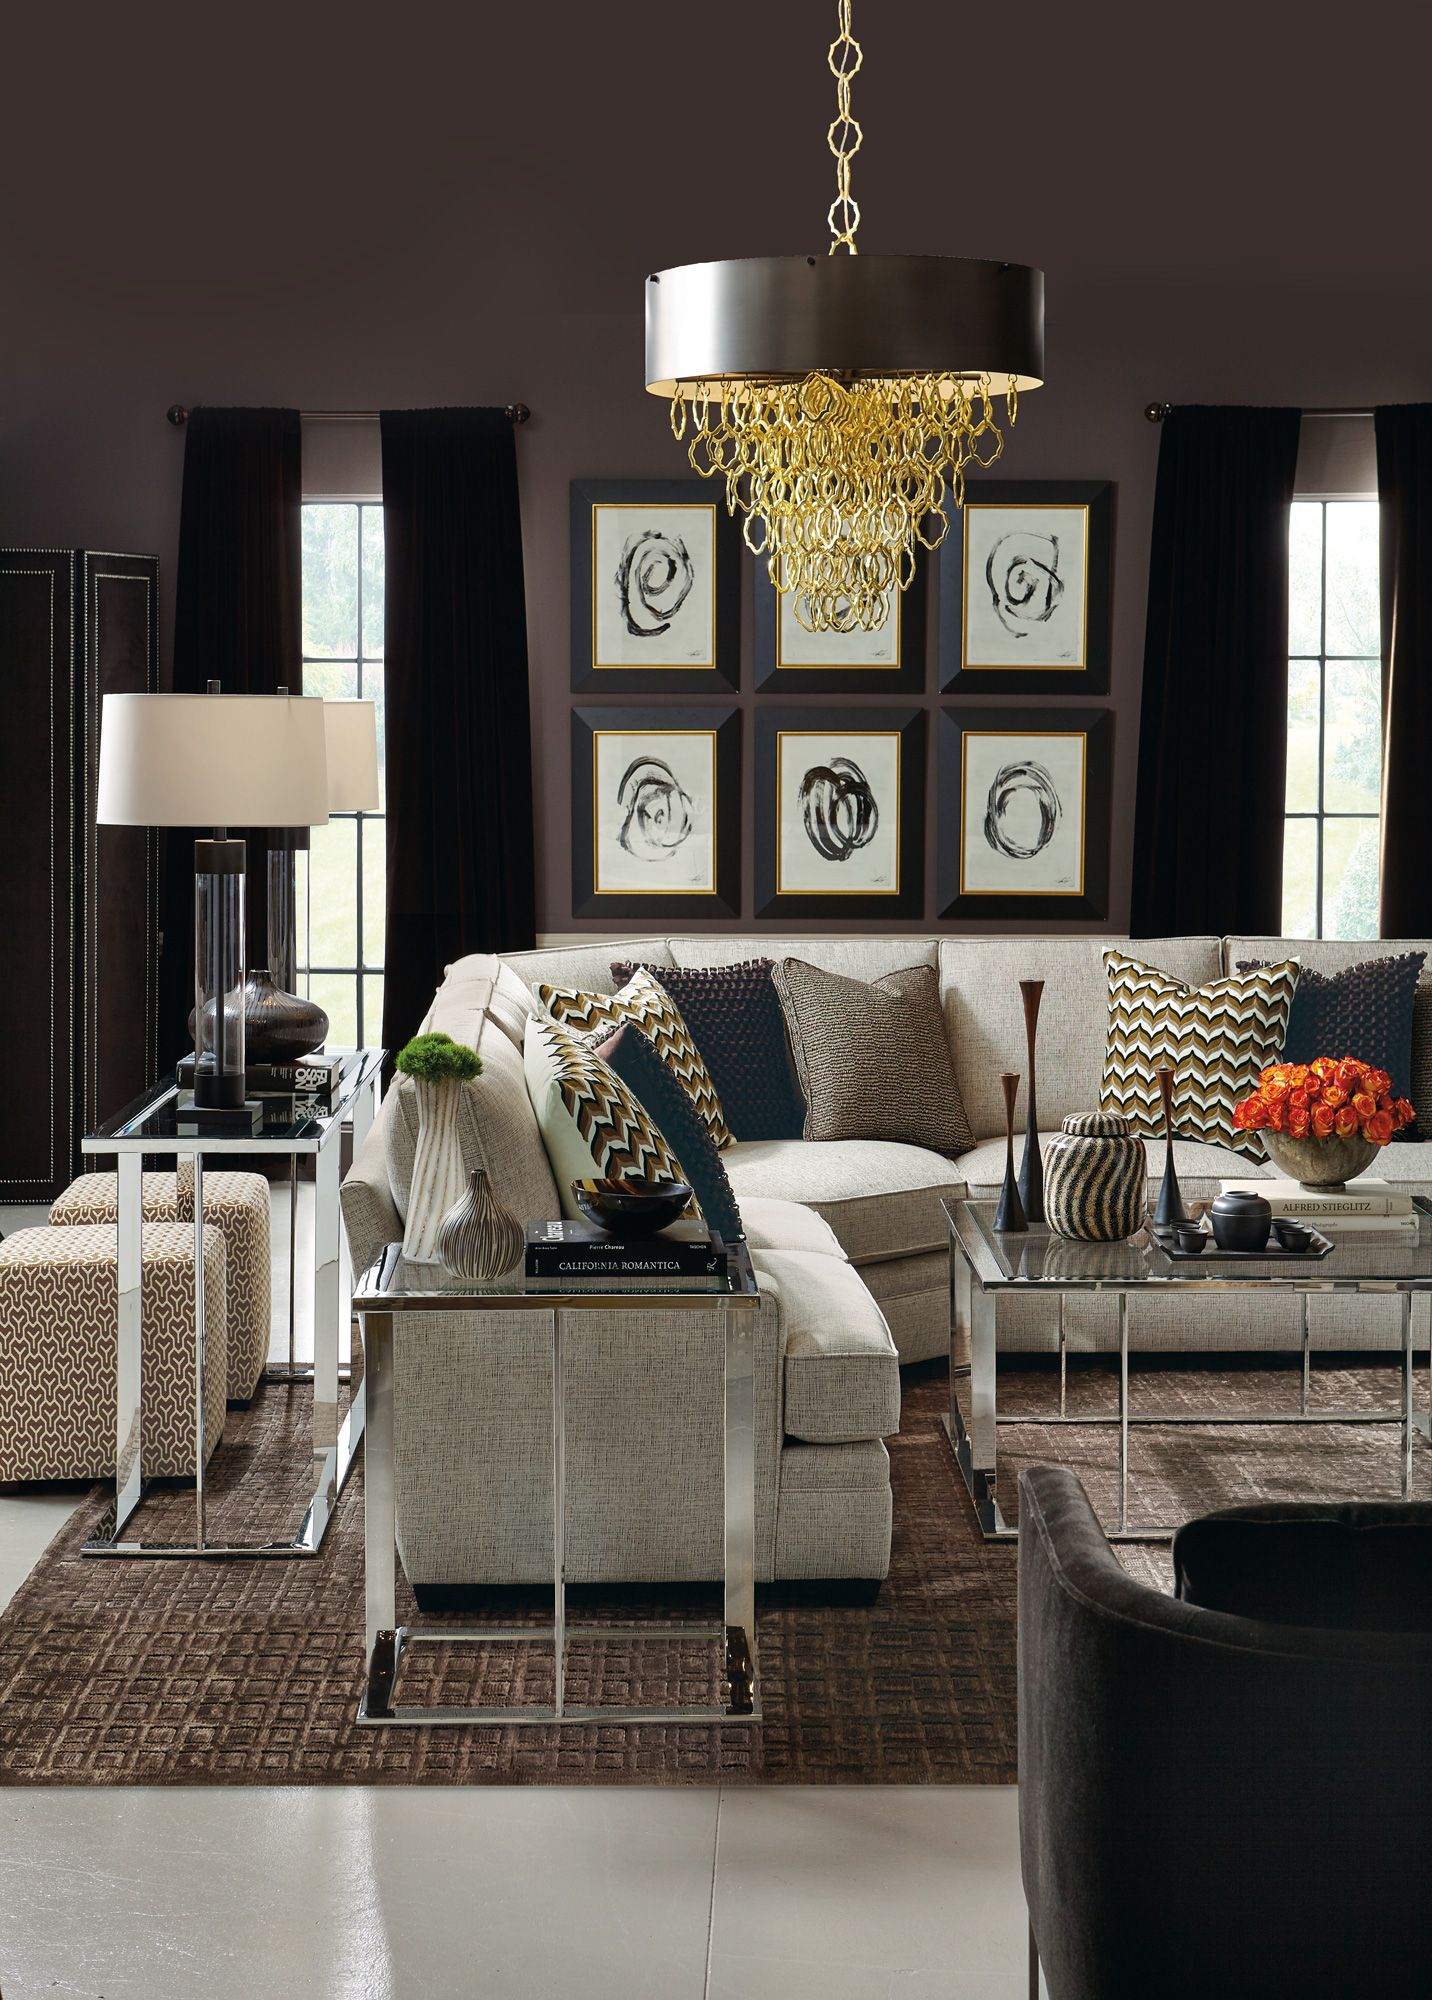 Tables Room Divider Sectional And Ottoman All By Bernhardt Available At Ennis Fine Furniture Boise Reno Spokane Tricities Wa